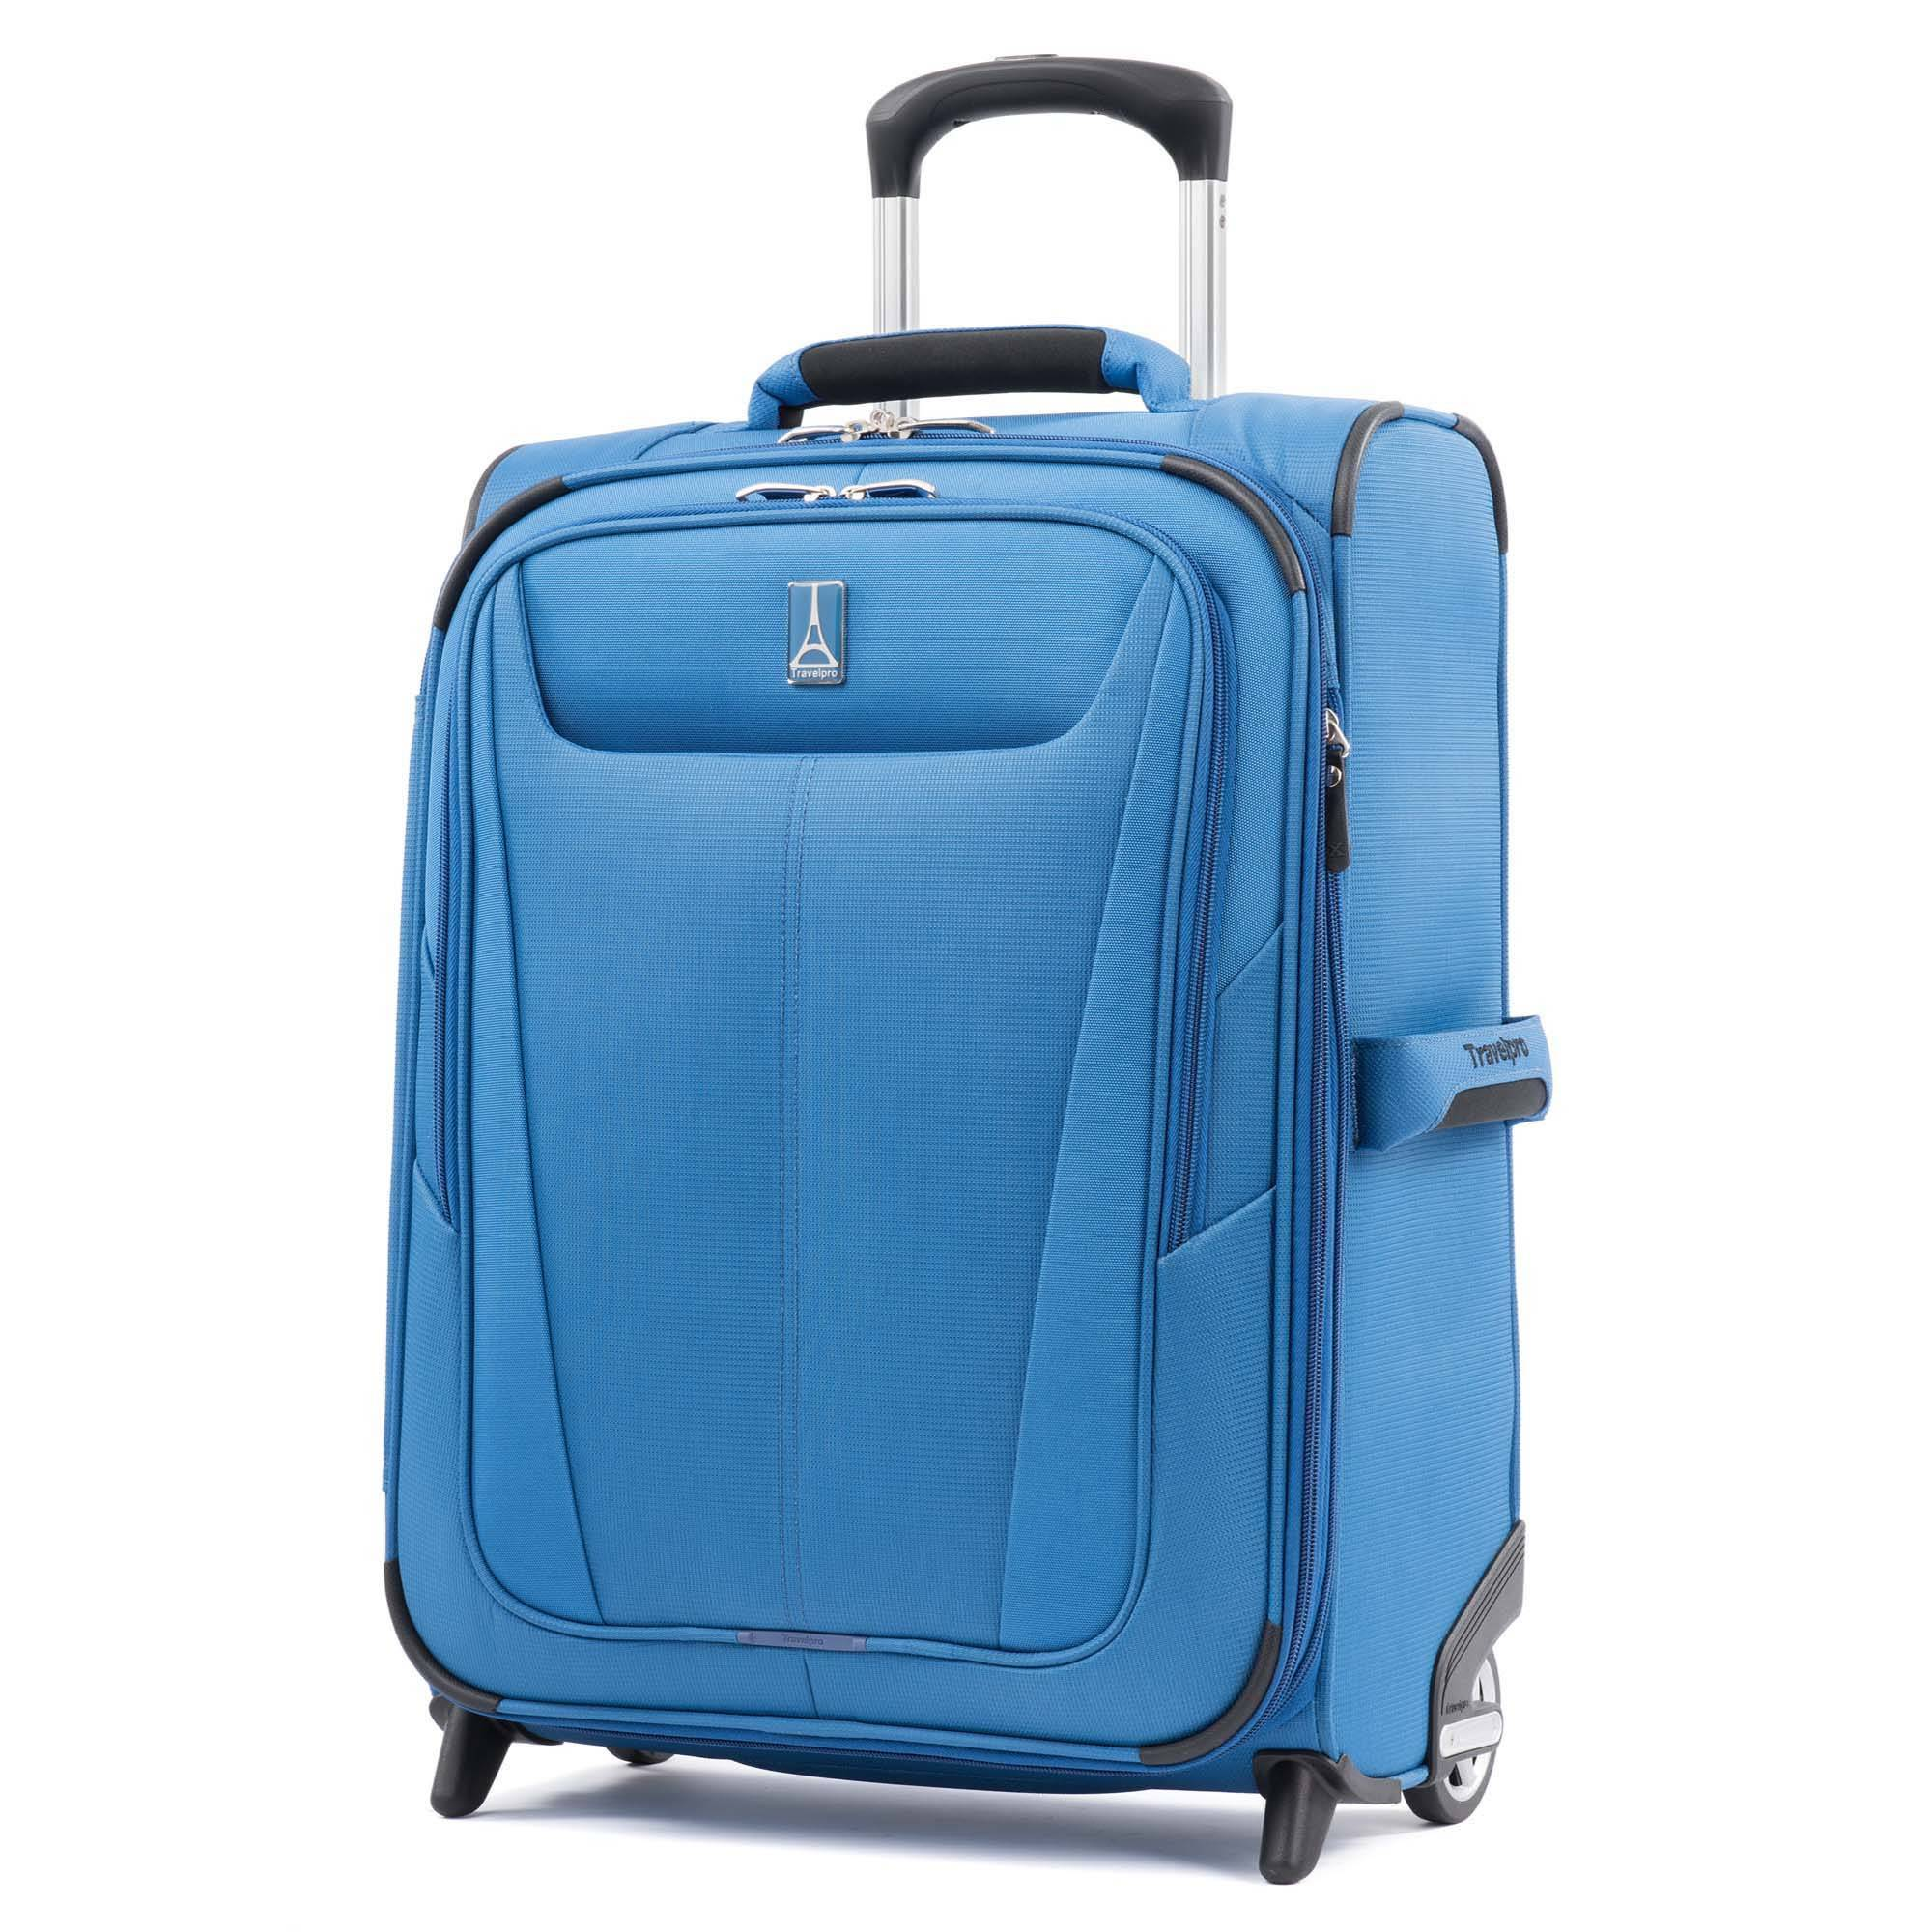 Travelpro Maxlite 5 International Expandable Carry On Rollaboard Luggage